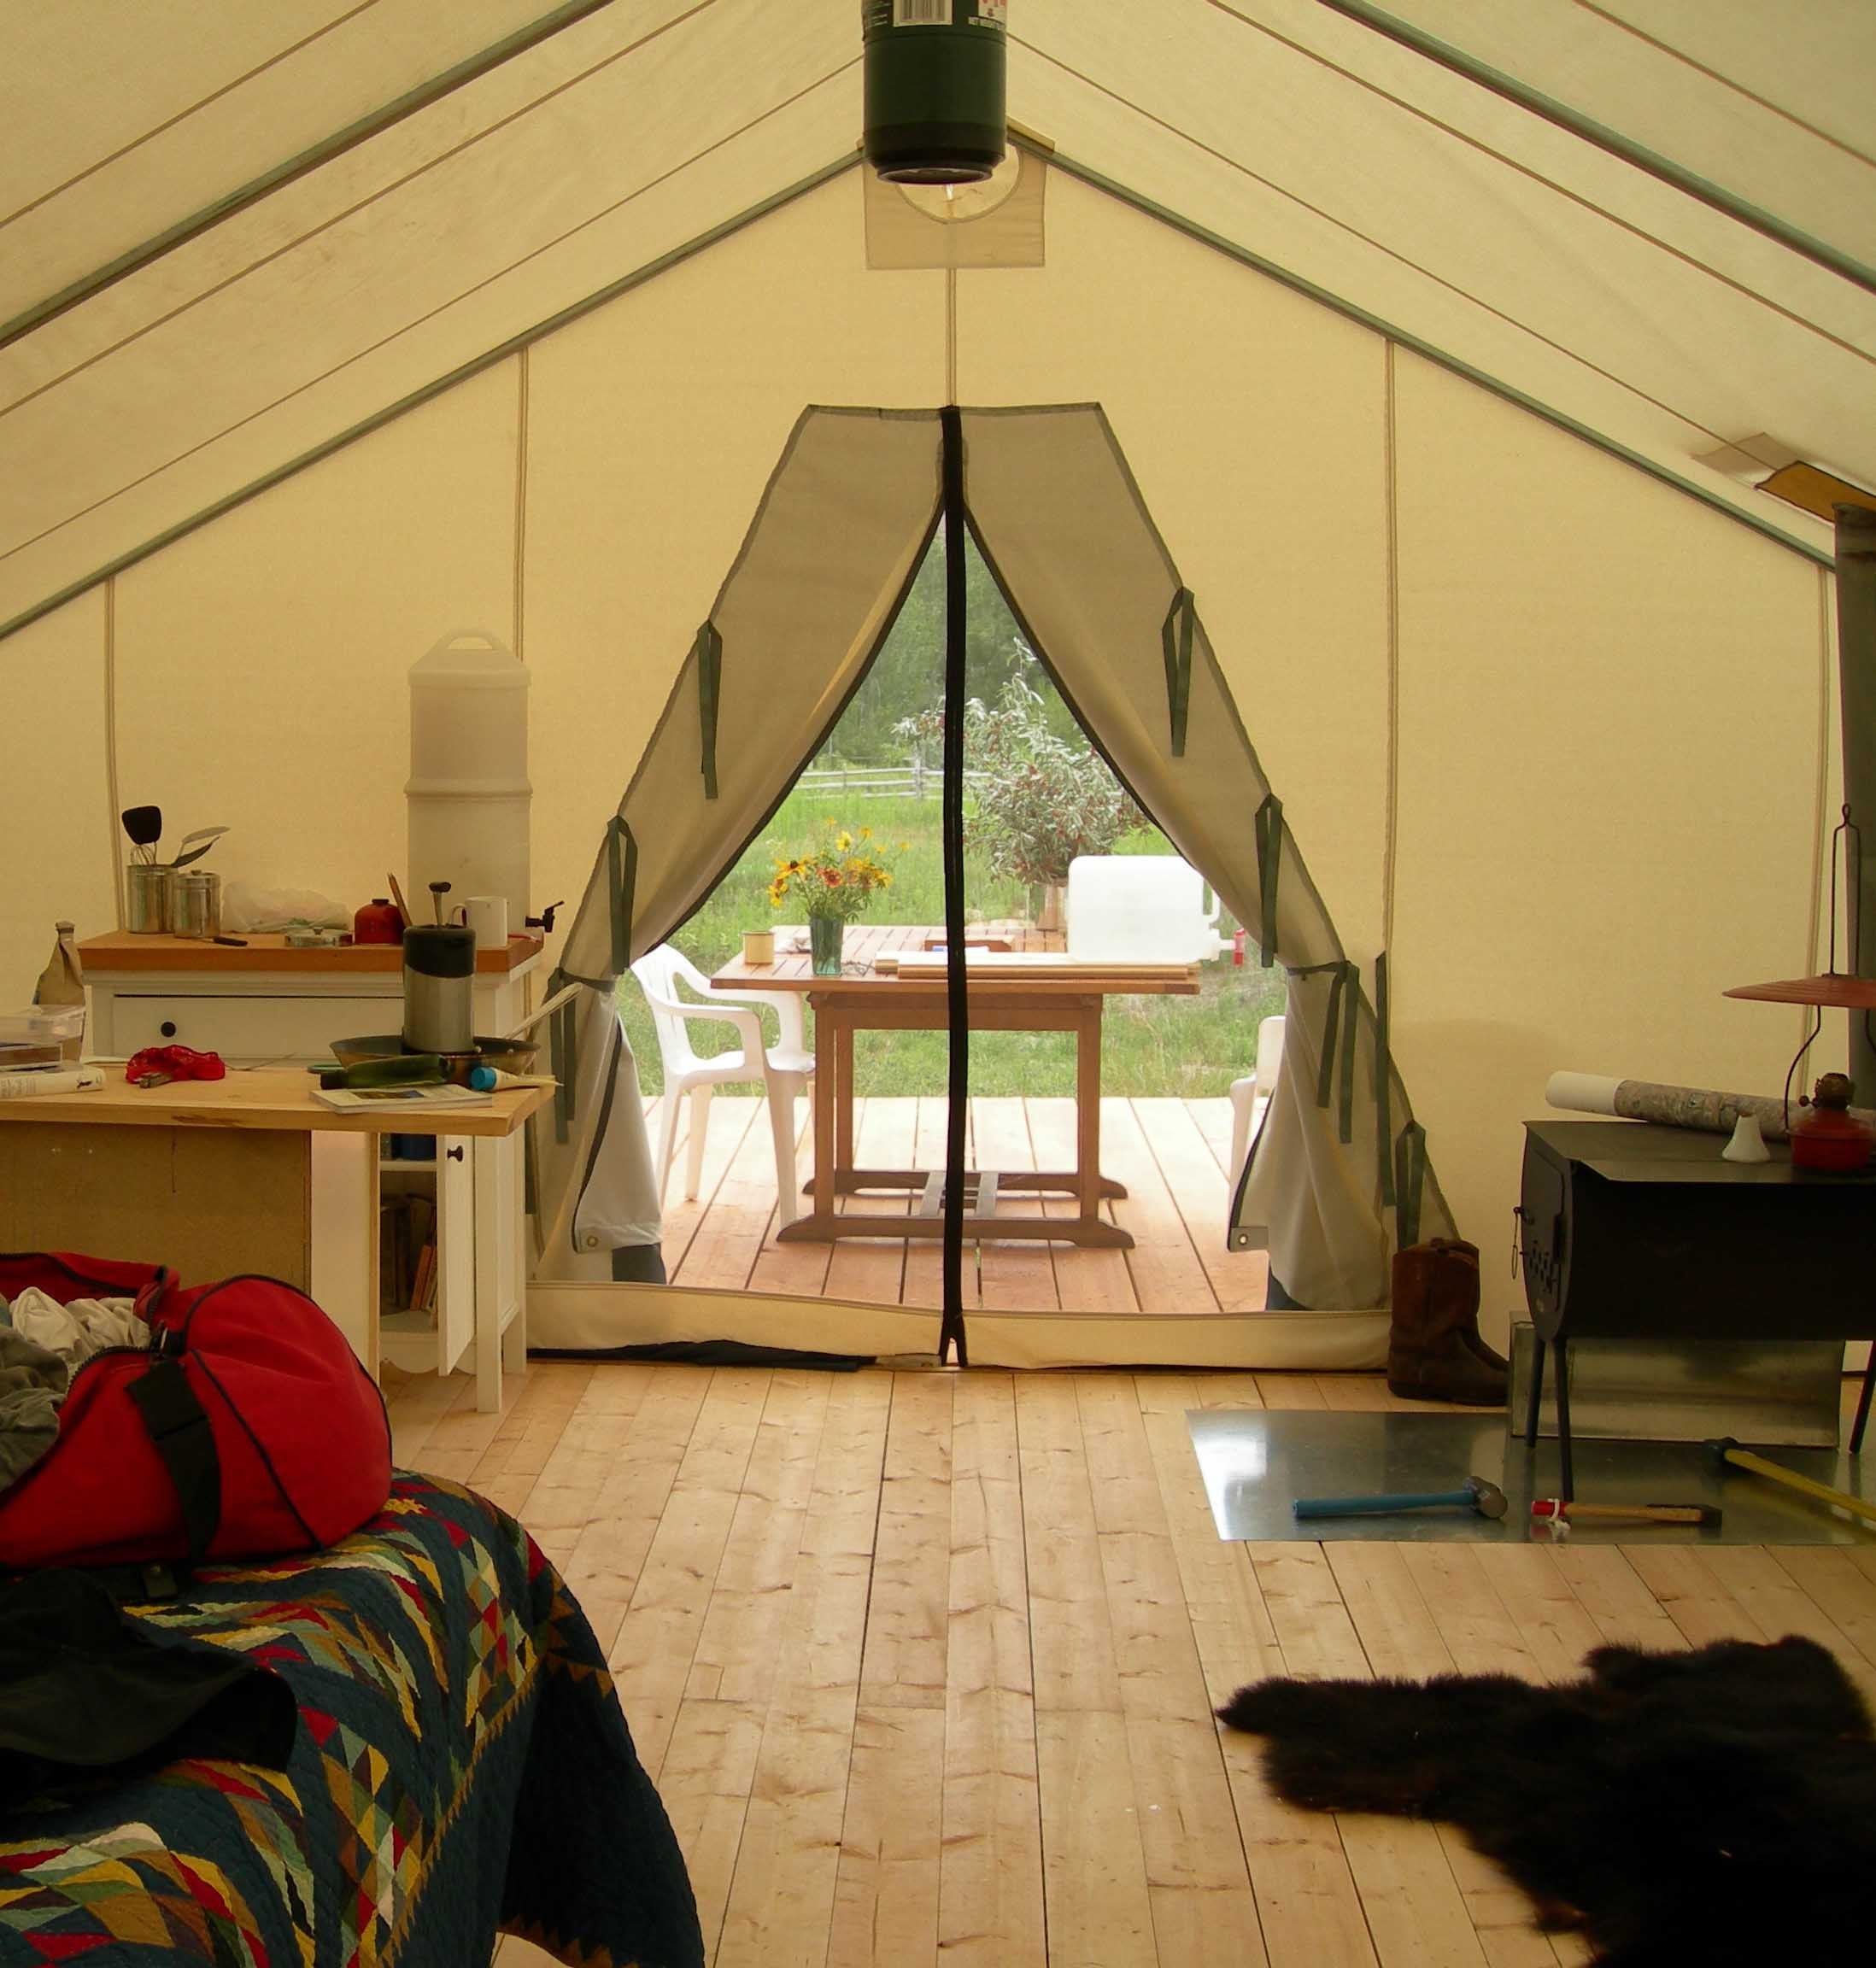 Hardwood Floor Glamping Tents Wall Tent Canvas Tent Tent Awning